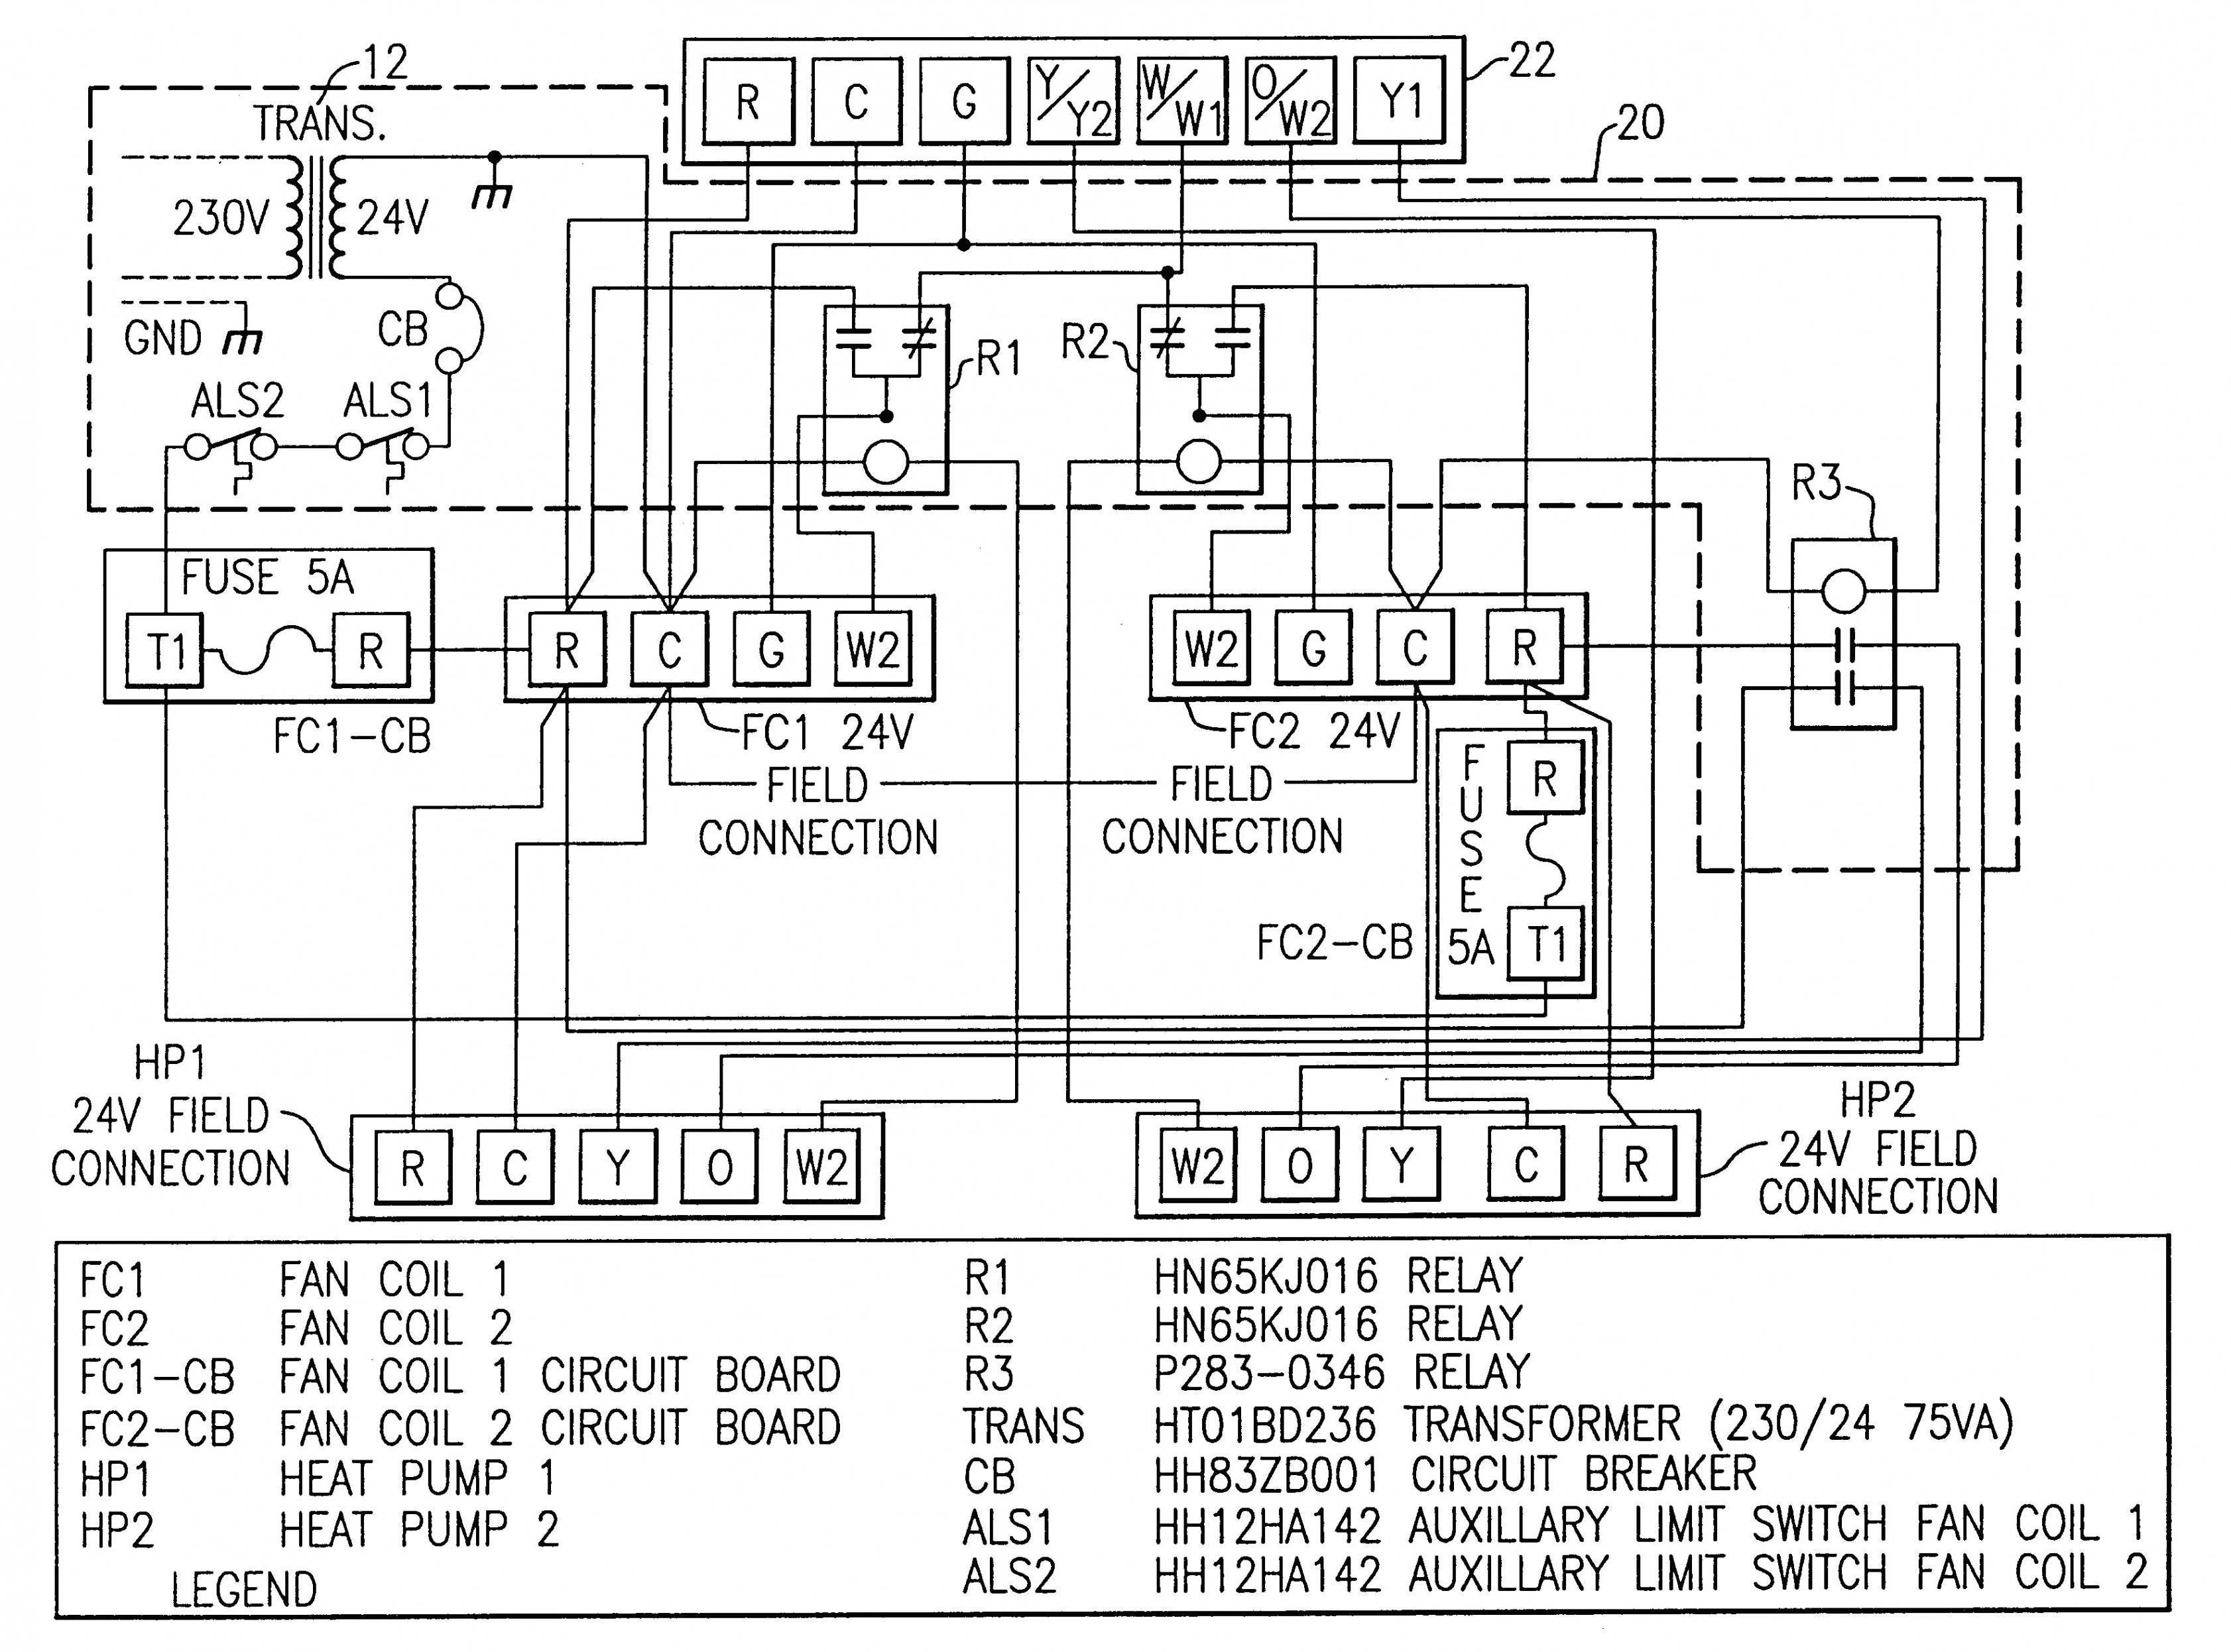 goodman heat pump package unit wiring diagram Download-Goodman Heat Pump Thermostat Wiring Diagram – Goodman Heat Pump Package Unit Wiring Diagram New Lennox 12-d